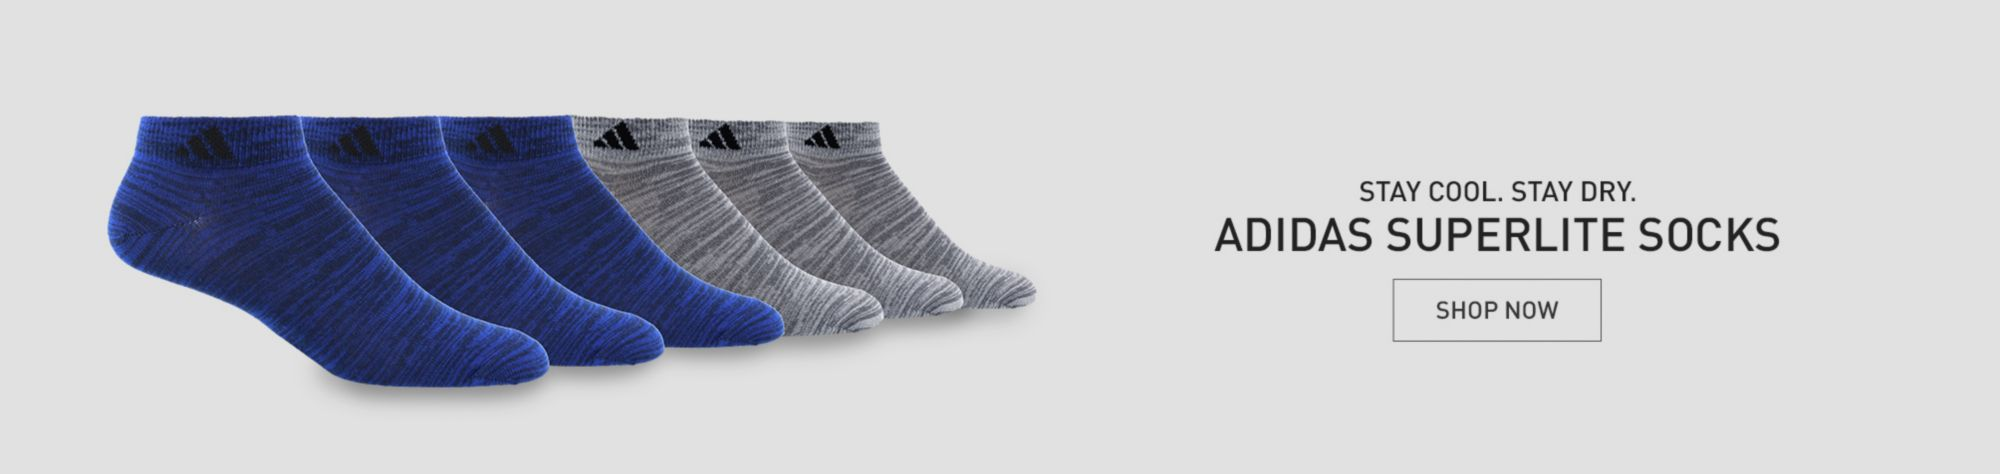 Adidas Super Lite Socks